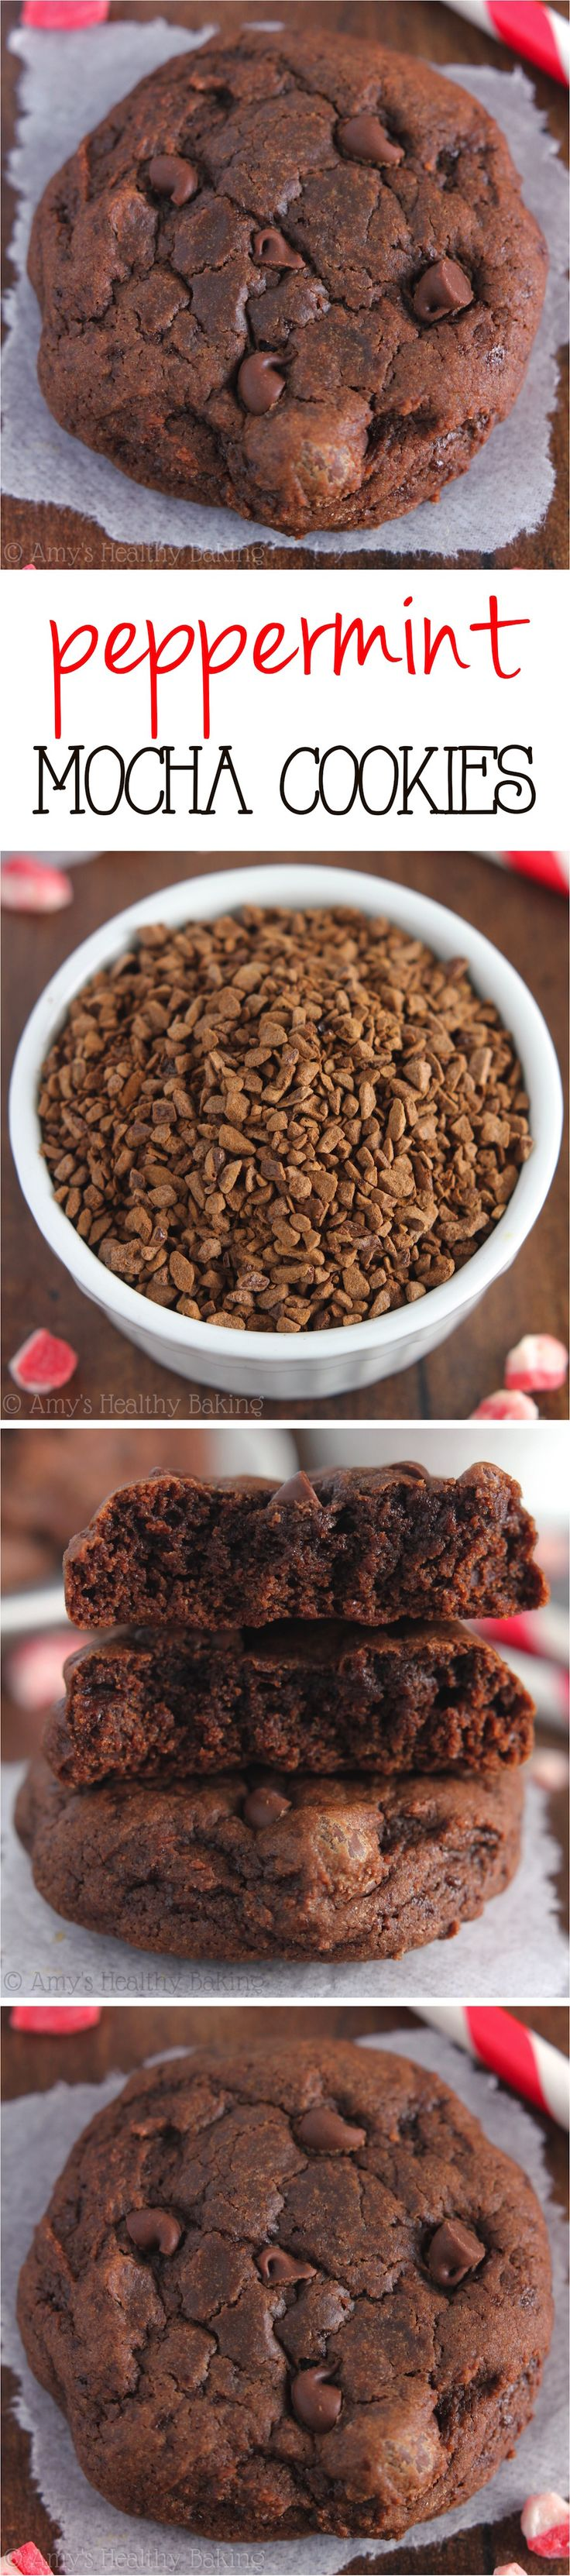 Peppermint Mocha Cookies -- like a cross between cookies & fudgy brownies with TONS of melty chocolate! Barely 100 calories, but they don't taste healthy at all!